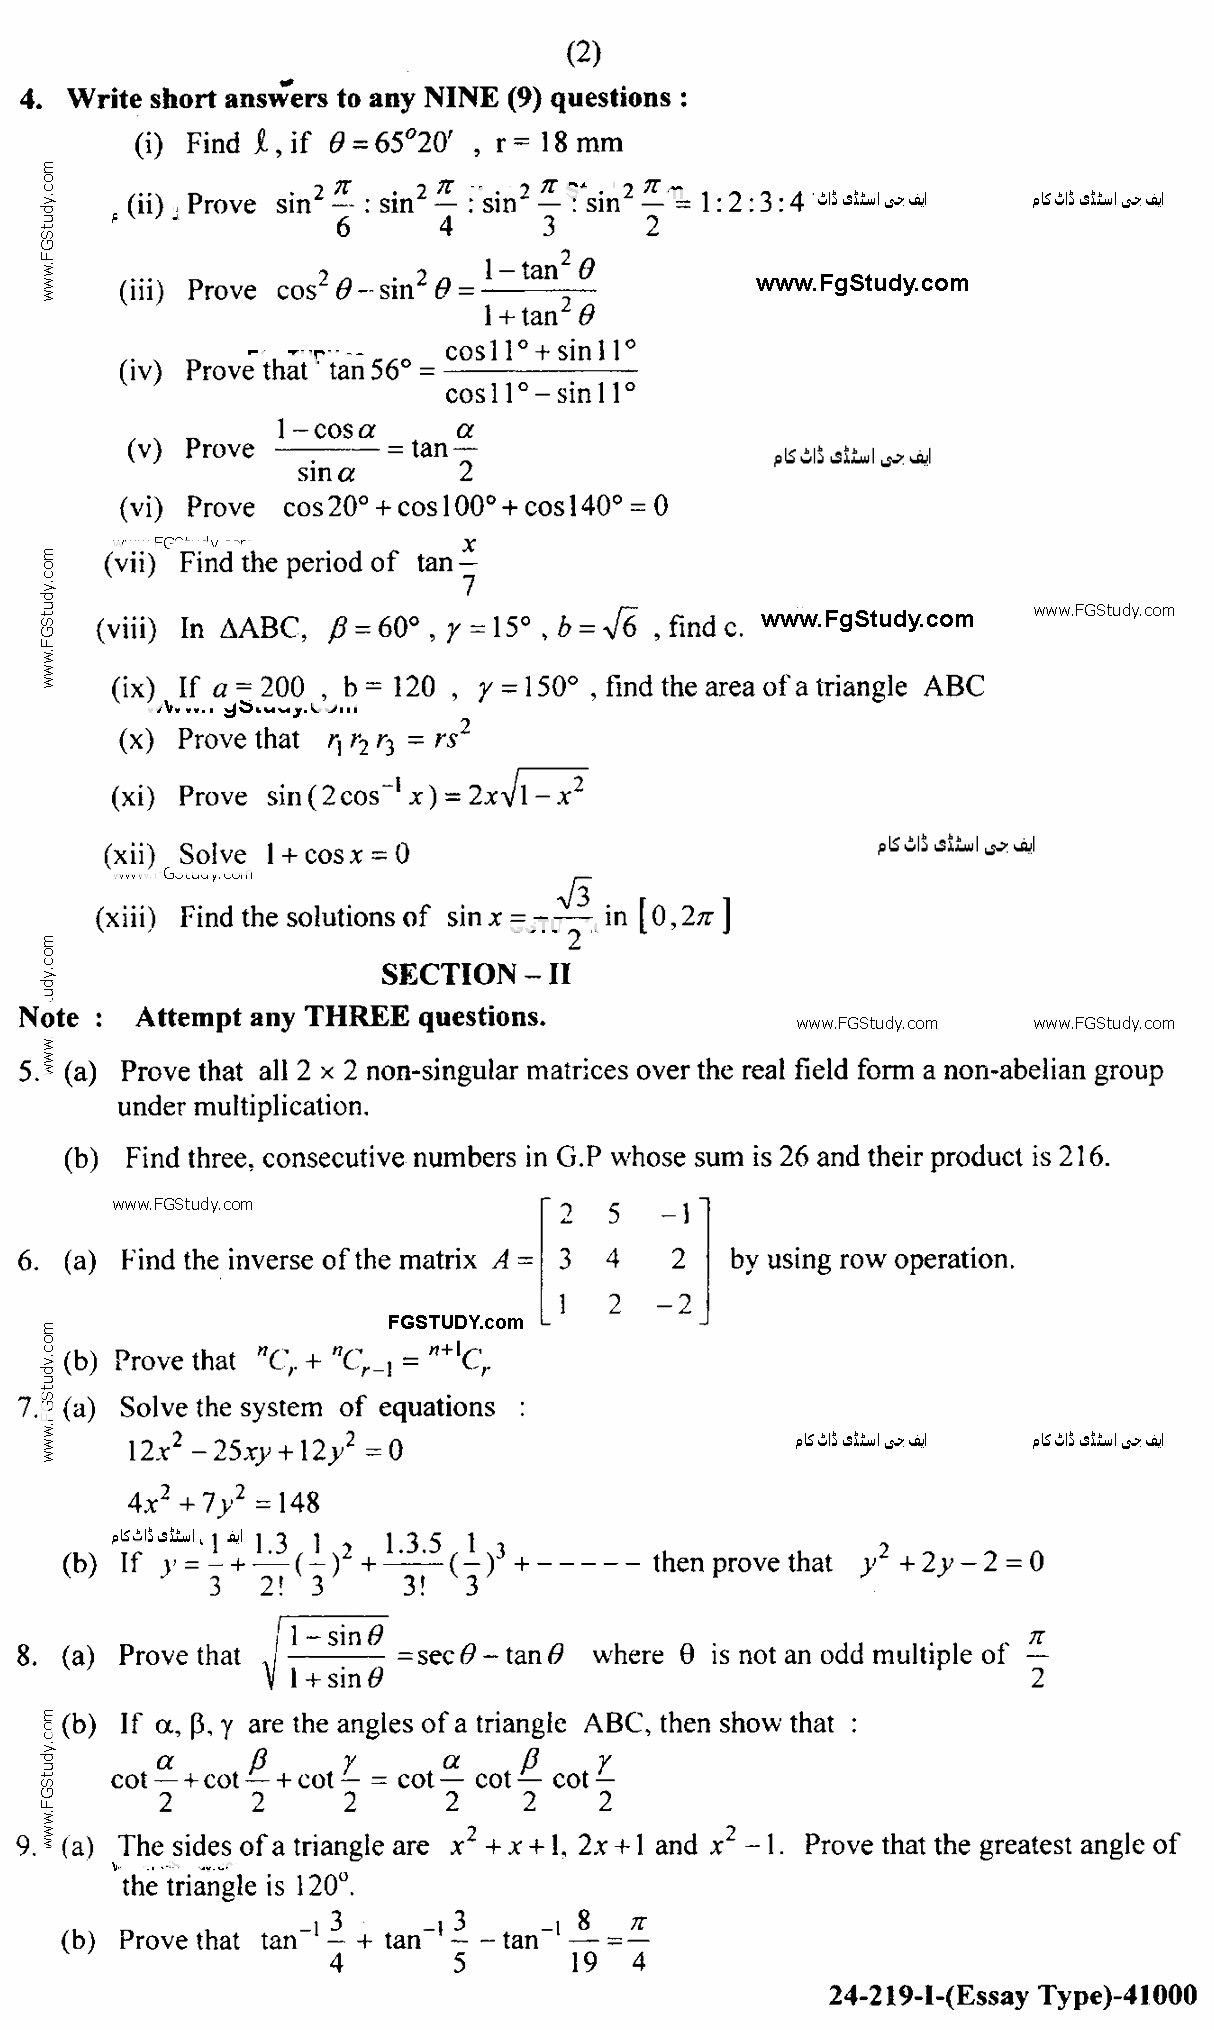 Mathematics Subjective Group 1 11th Class Past Papers 2019 page 2